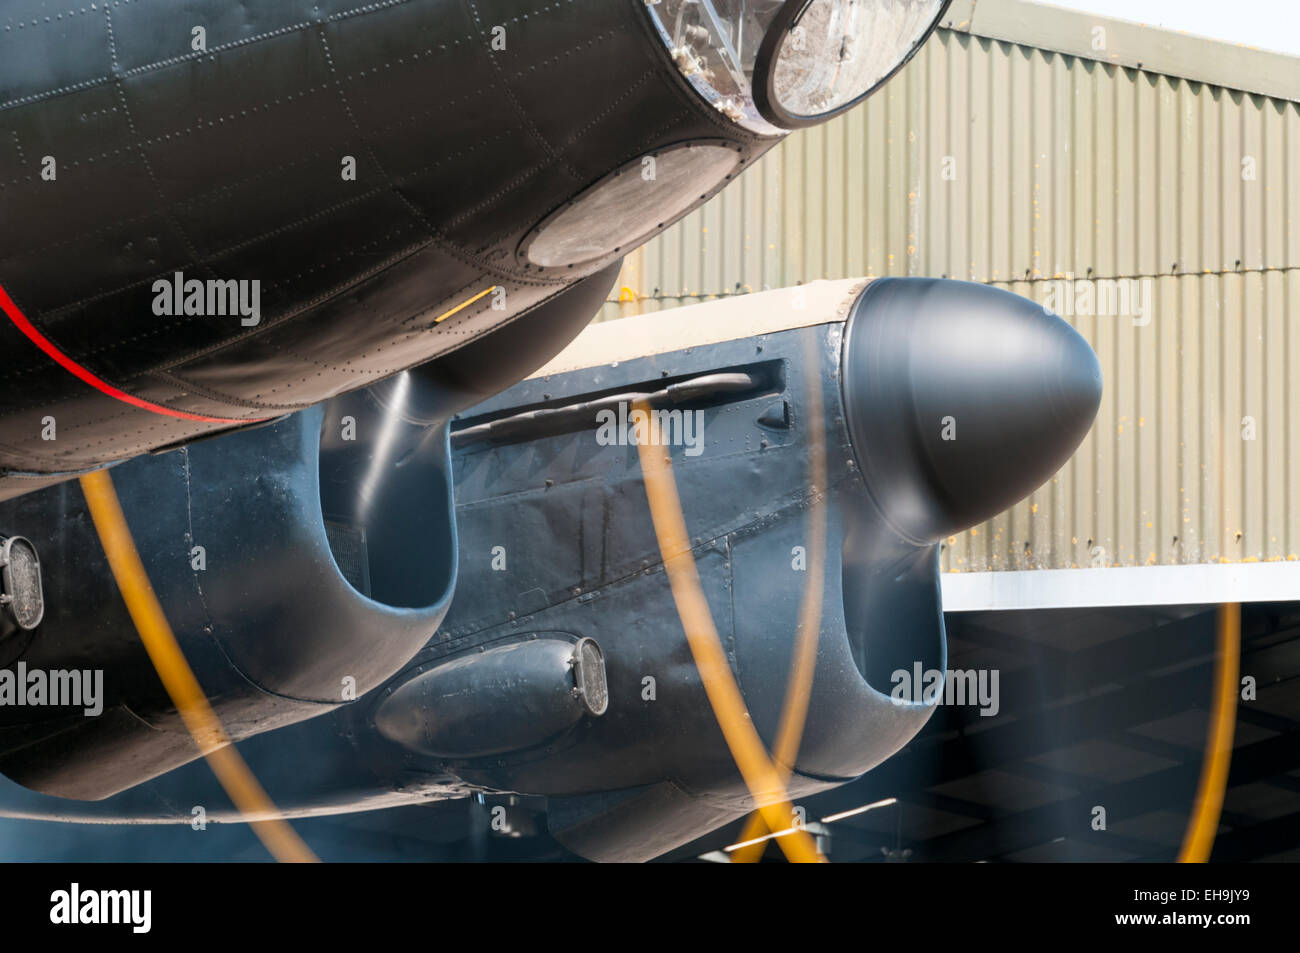 RAF Lancaster bomber propellers rendered as a spinning blur by a long exposure - Stock Image